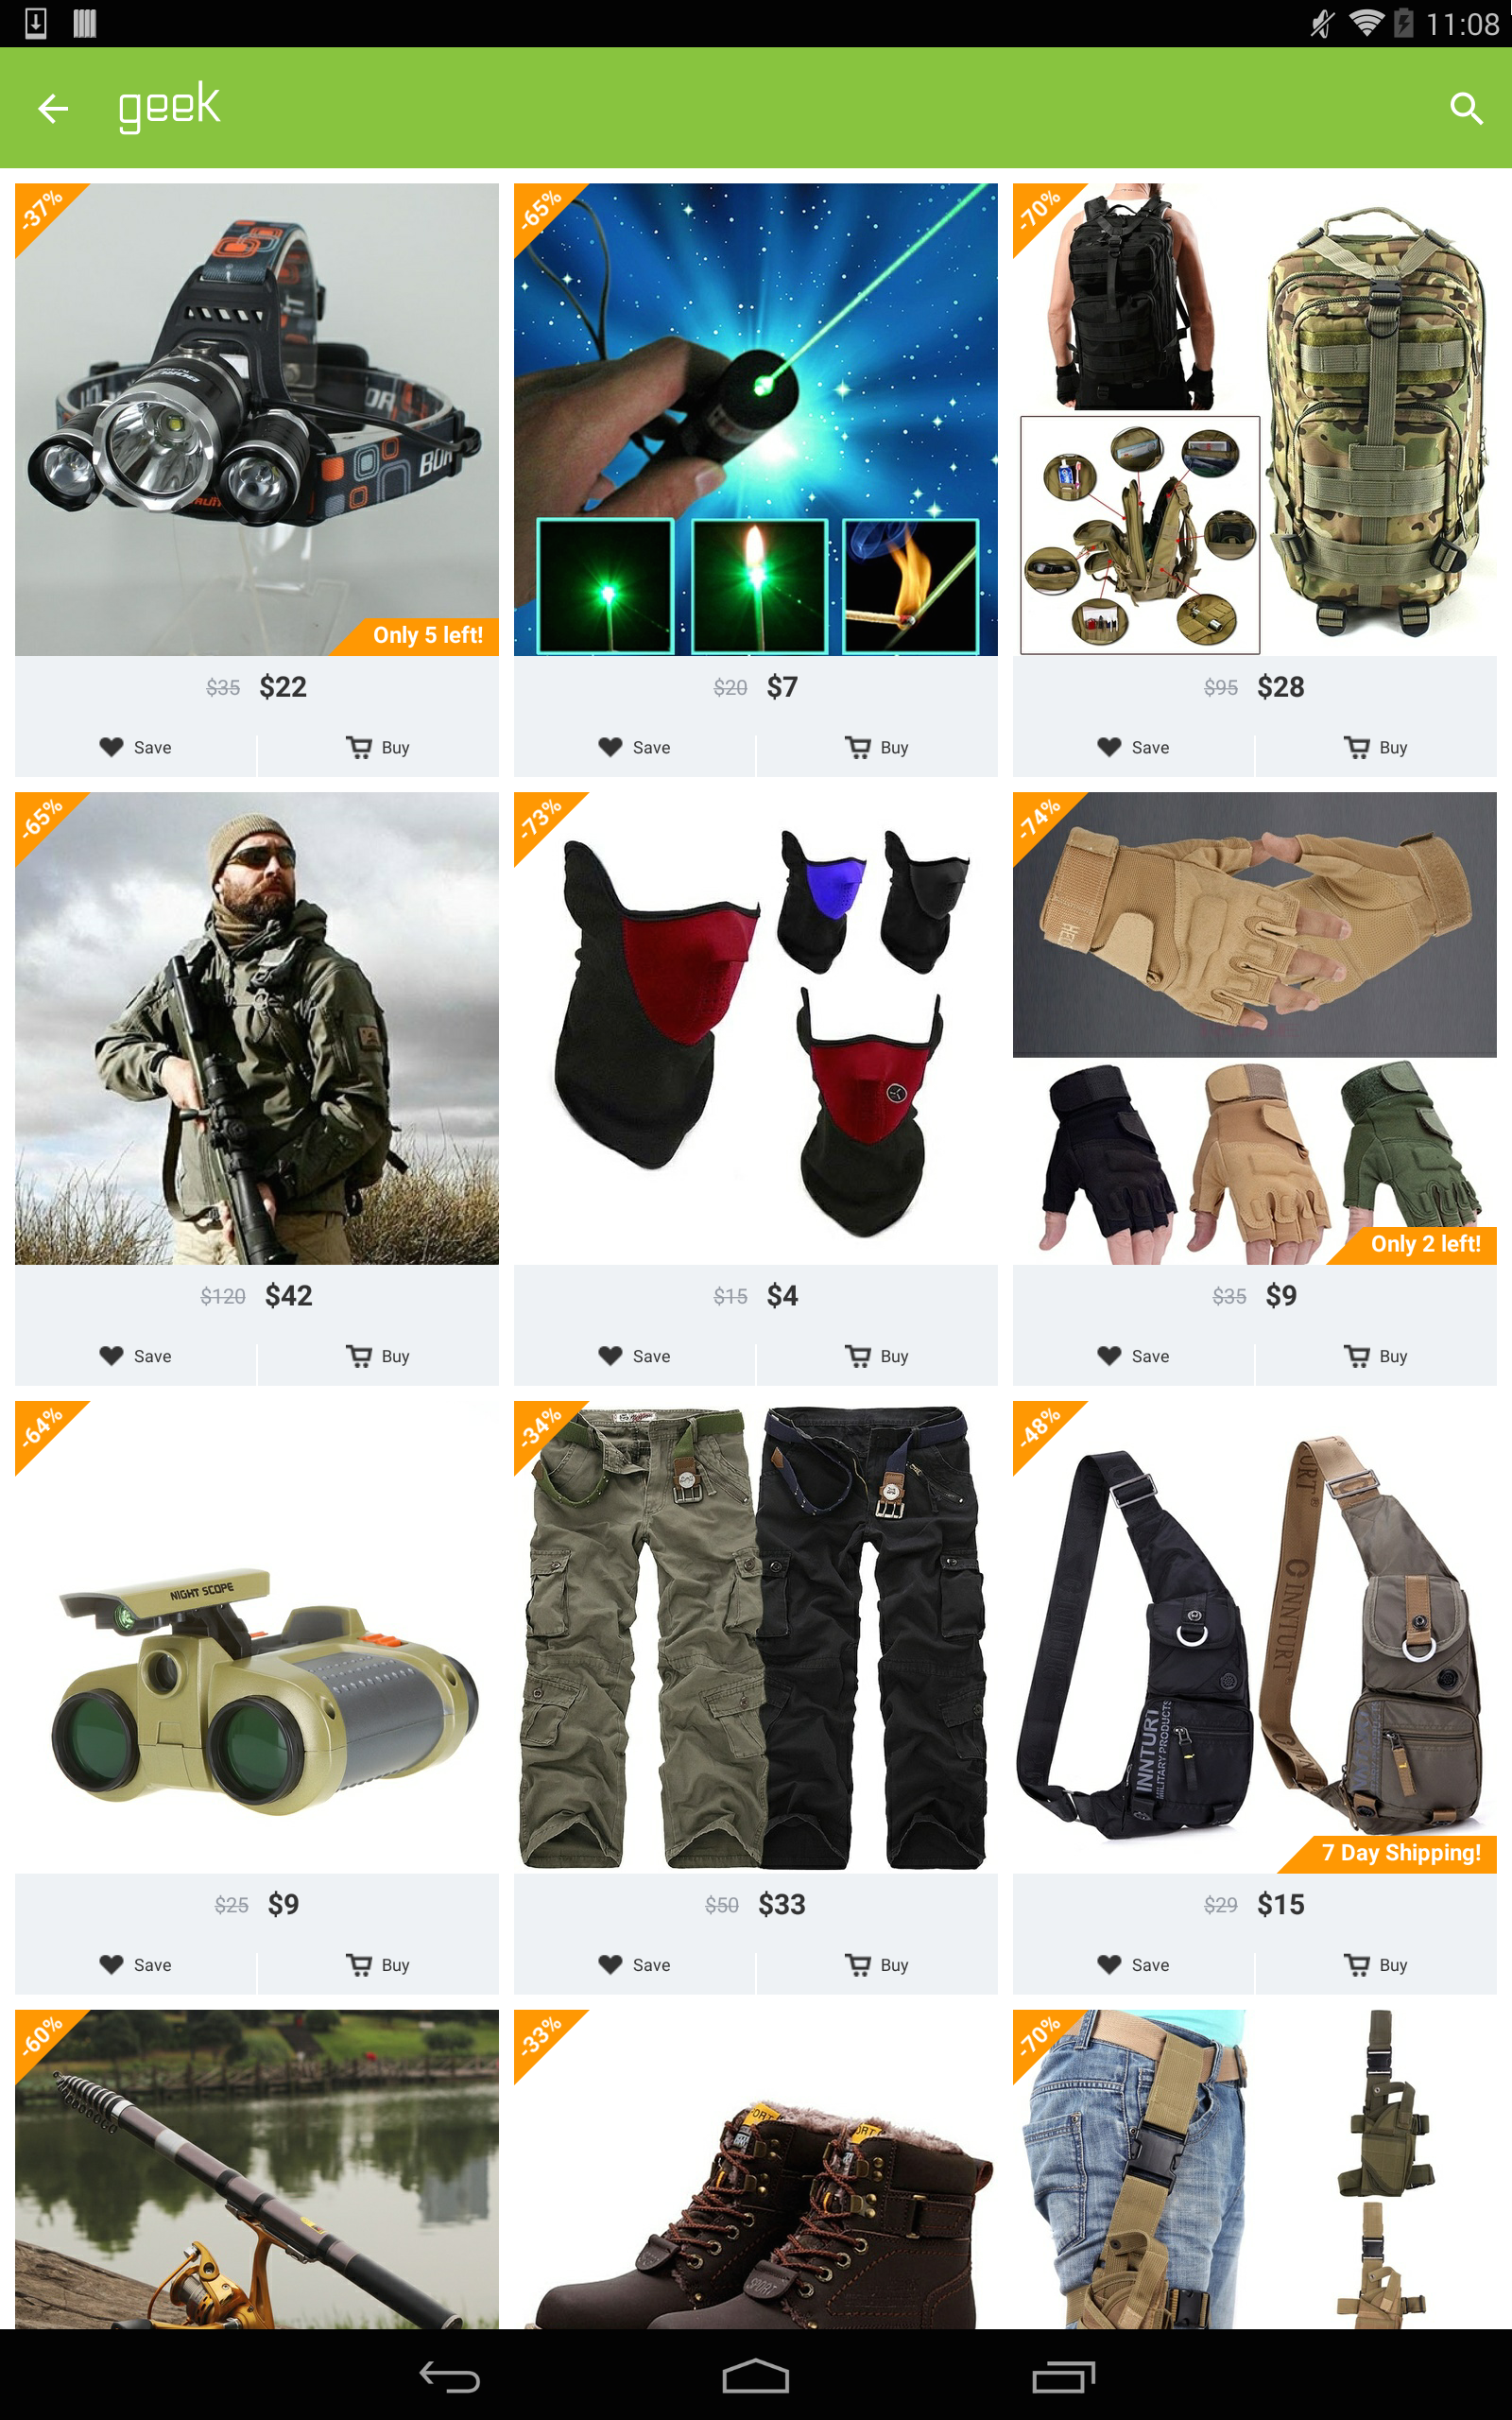 Geek - Smarter Shopping screenshot #13